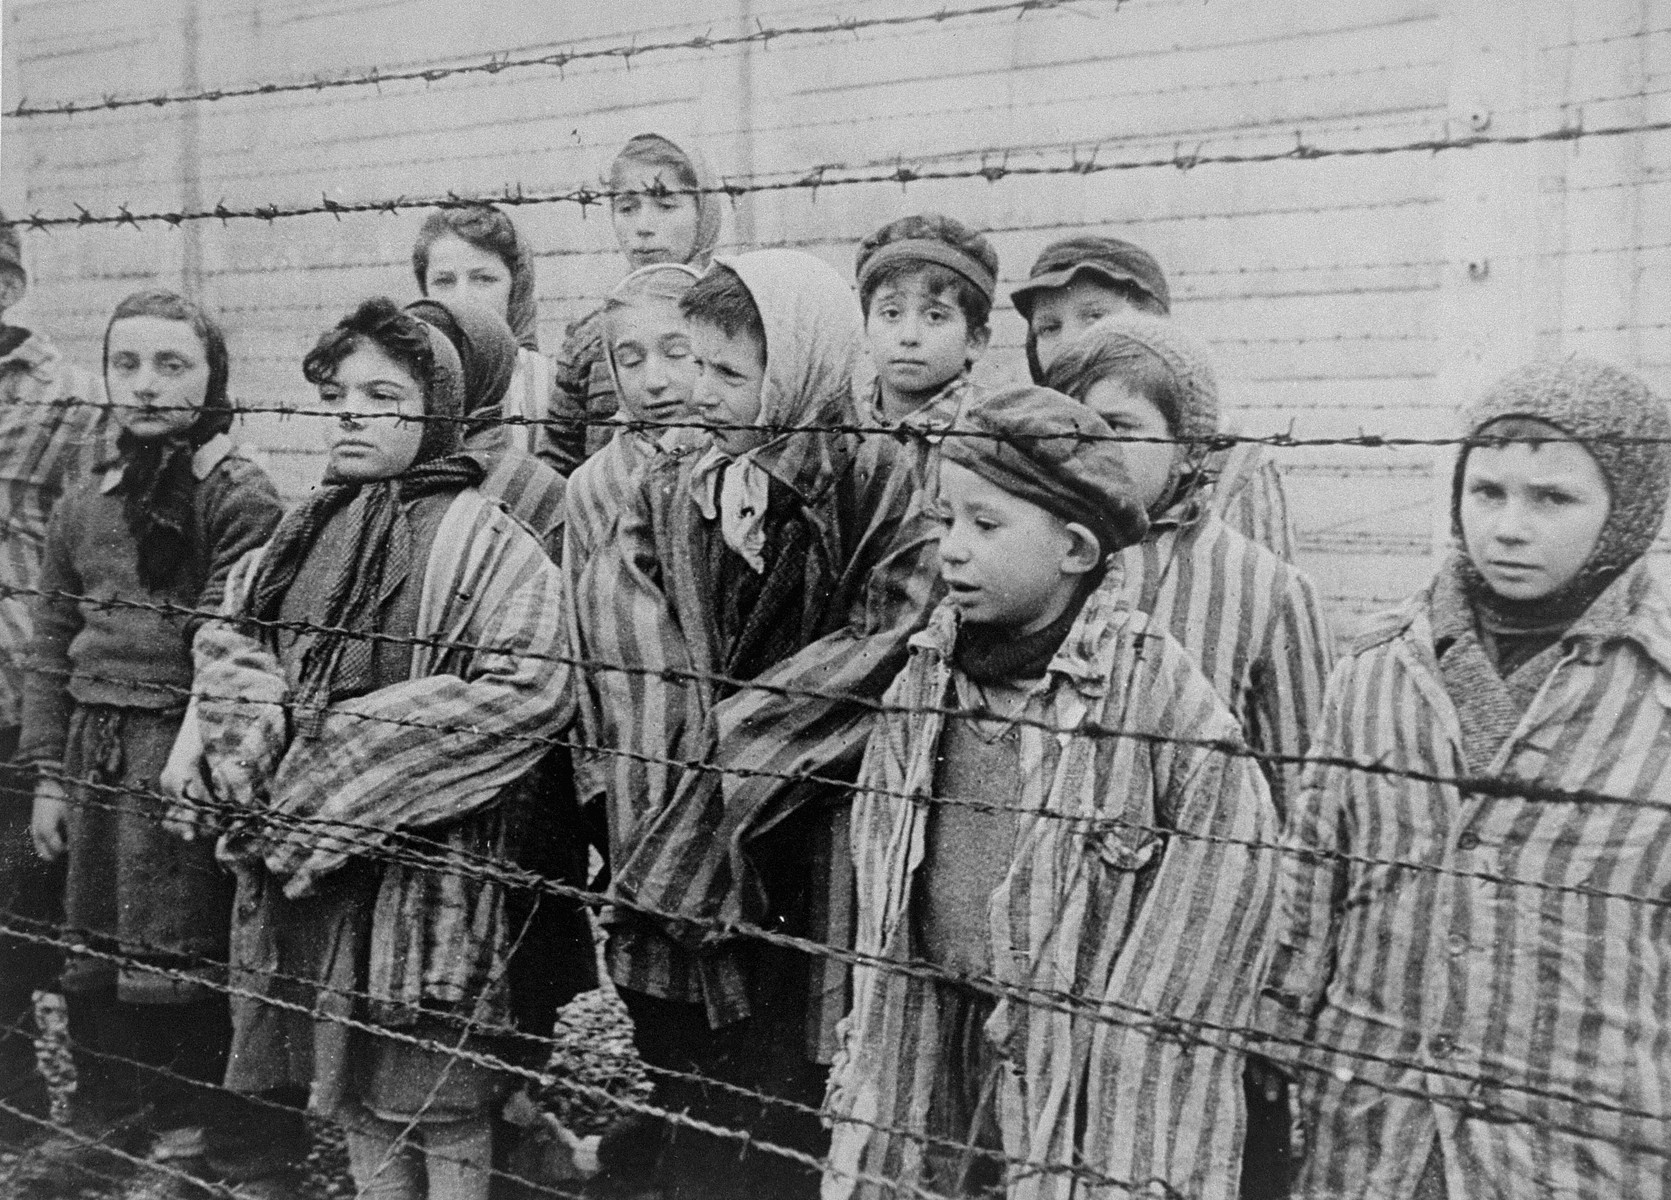 Child survivors of Auschwitz, wearing adult-size prisoner jackets, stand behind a barbed wire fence.  Among those pictured are Tomasz Szwarz; Alicja Gruenbaum; Solomon Rozalin; Gita Sztrauss; Wiera Sadler; Marta Wiess; Boro Eksztein; Josef Rozenwaser; Rafael Szlezinger; Gabriel Nejman; Gugiel Appelbaum; Mark Berkowitz (a twin); Pesa Balter; Rut Muszkies (later Webber); Miriam Friedman; and twins Miriam Mozes and Eva  Mozes wearing knitted hats.  STILL PHOTOGRAPH FROM THE SOVIET FILM of the liberation of Auschwitz, taken by the film unit of the First Ukrainian Front.